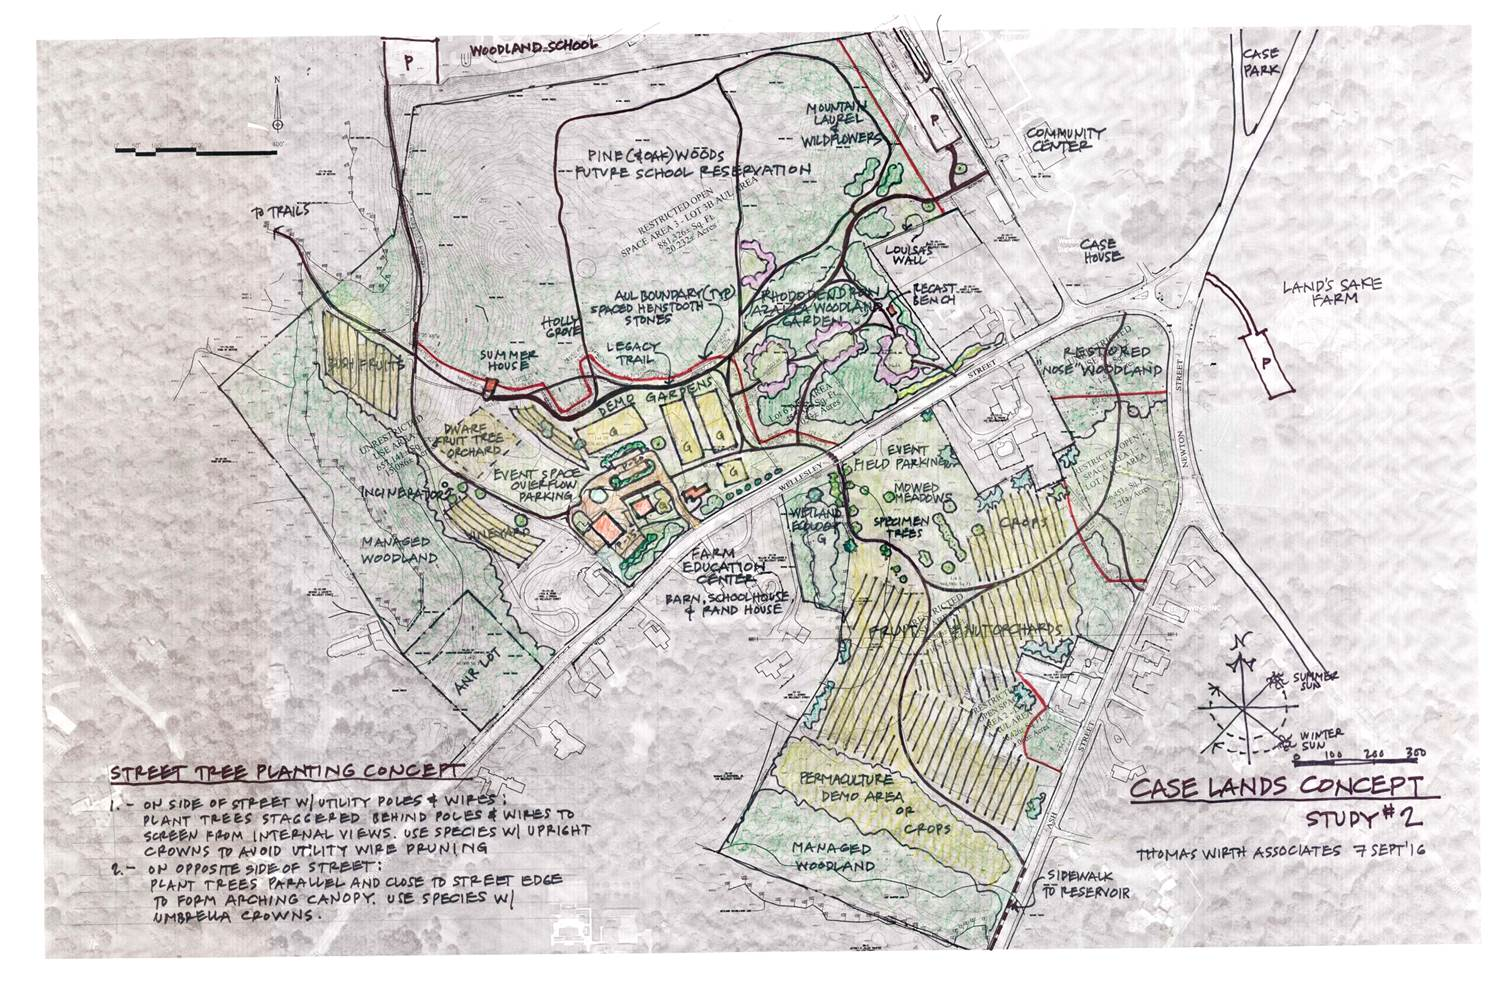 drawing of the case estates land master plan